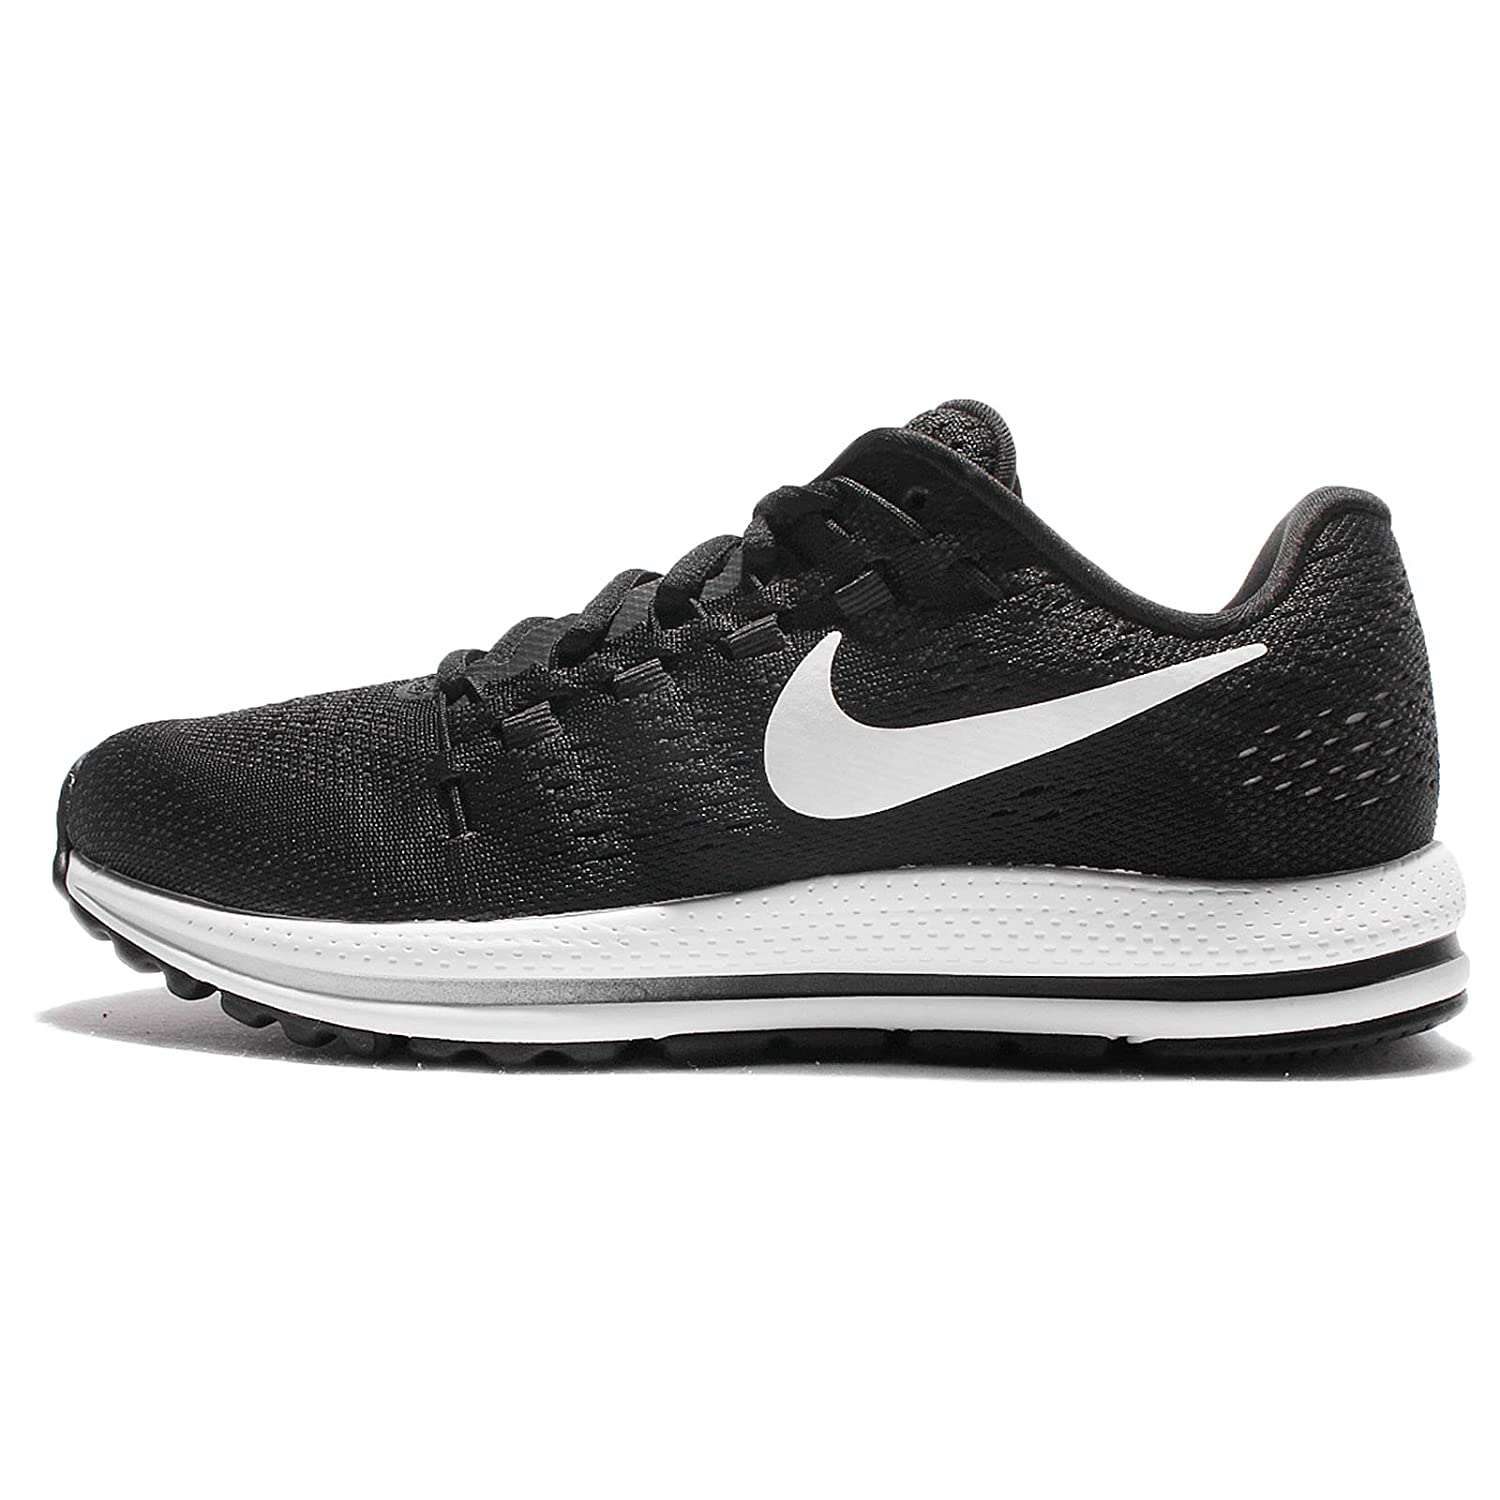 Nike Women's Women's Air Zoom Vomero 12 Athletic Shoes BlackWhiteAnthracite (10.5M)